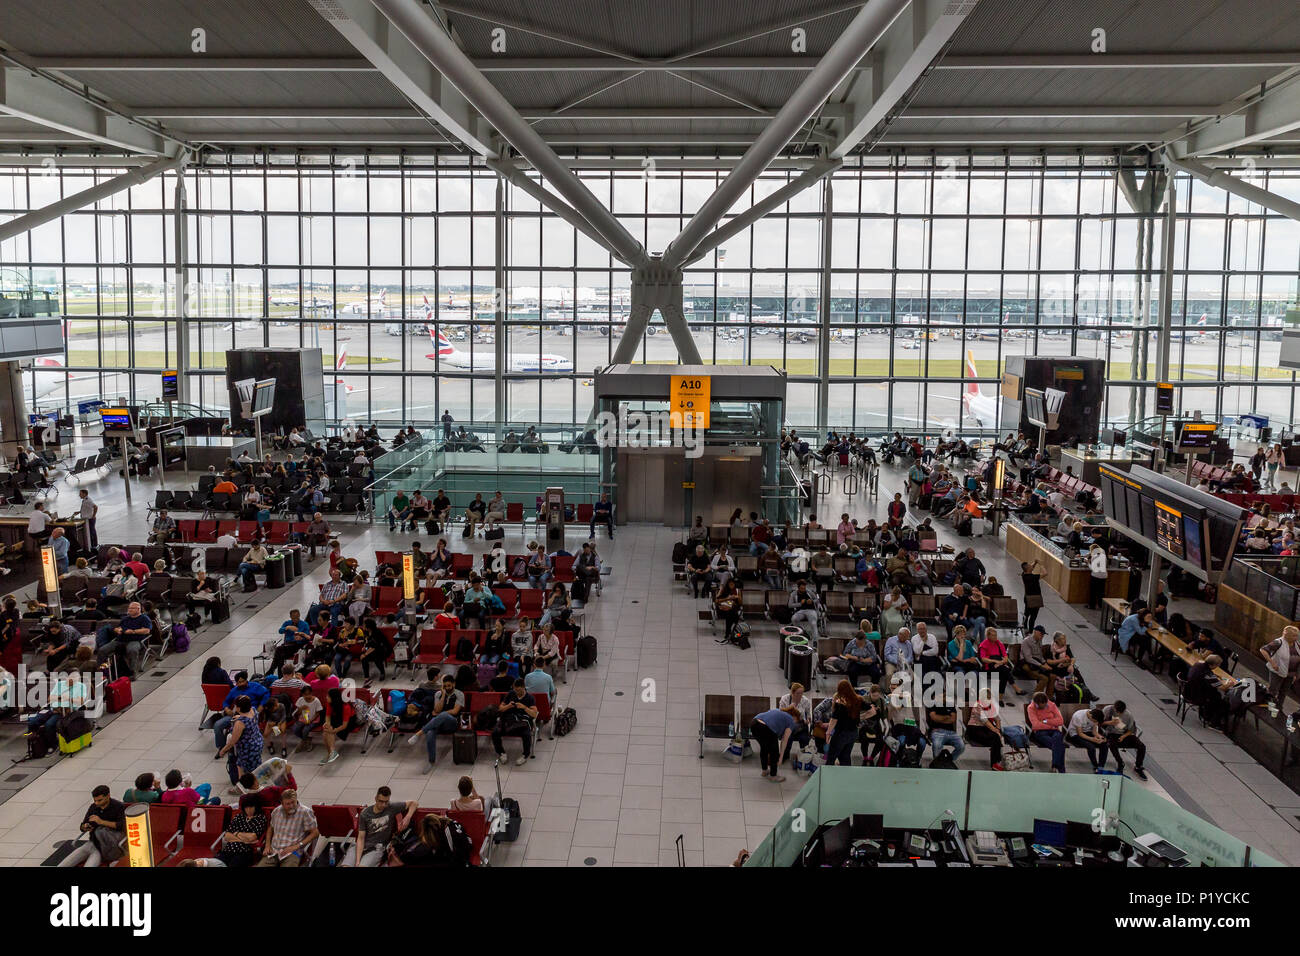 LONDON - MAY 27, 2018: Crowds of people waiting in departures to board plane at London Heathrow airport - Stock Image